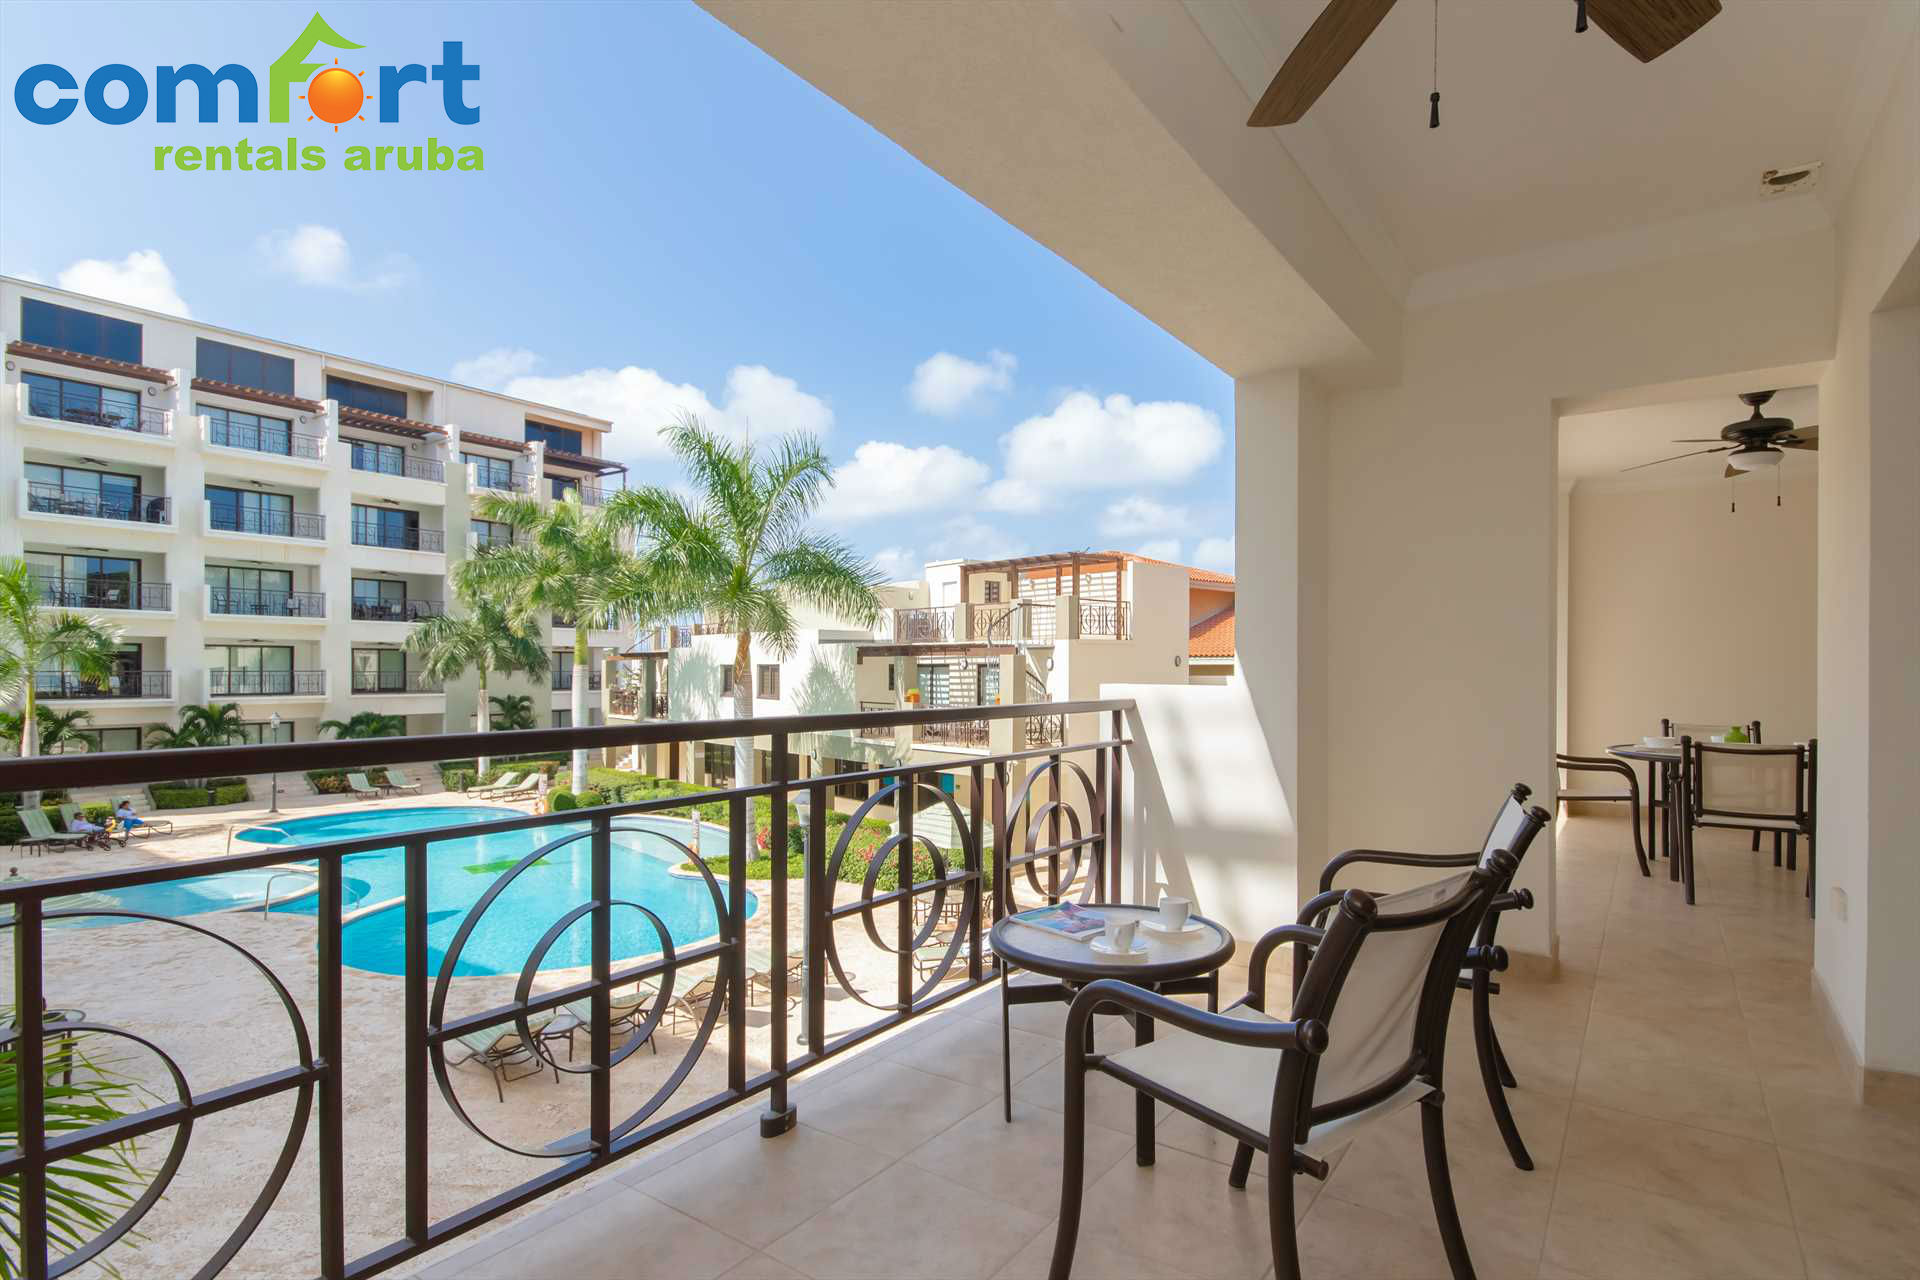 Lounge out on your spacious double balcony and enjoy Aruba's signature weather